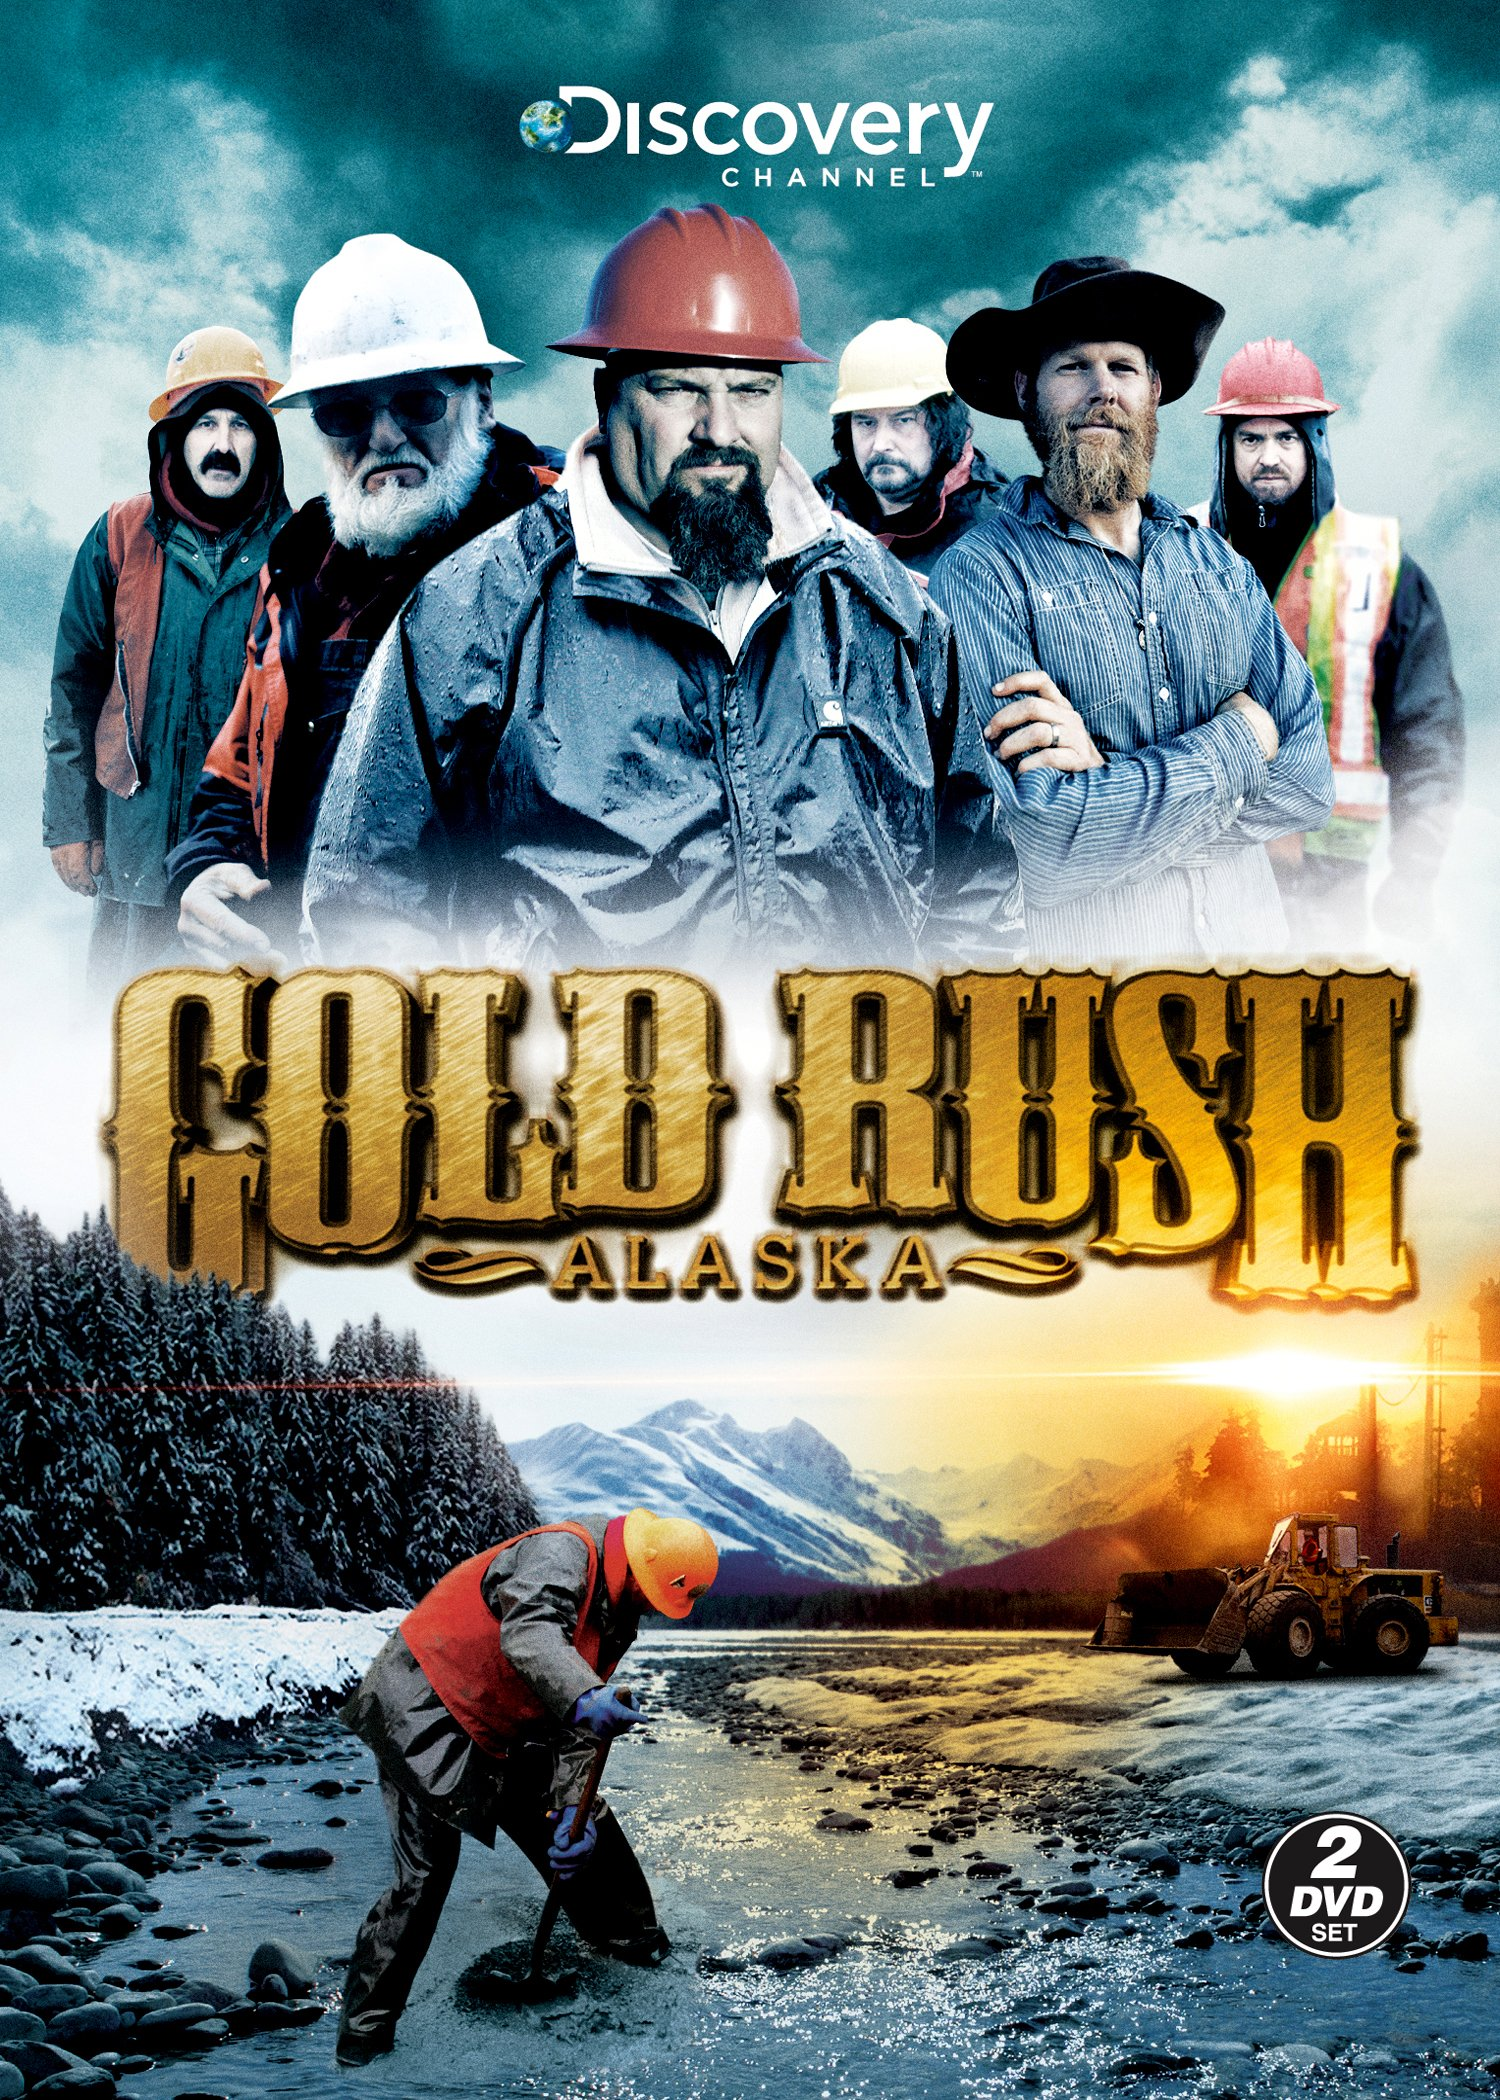 Gold Rush Alaska by Discovery - Gaiam